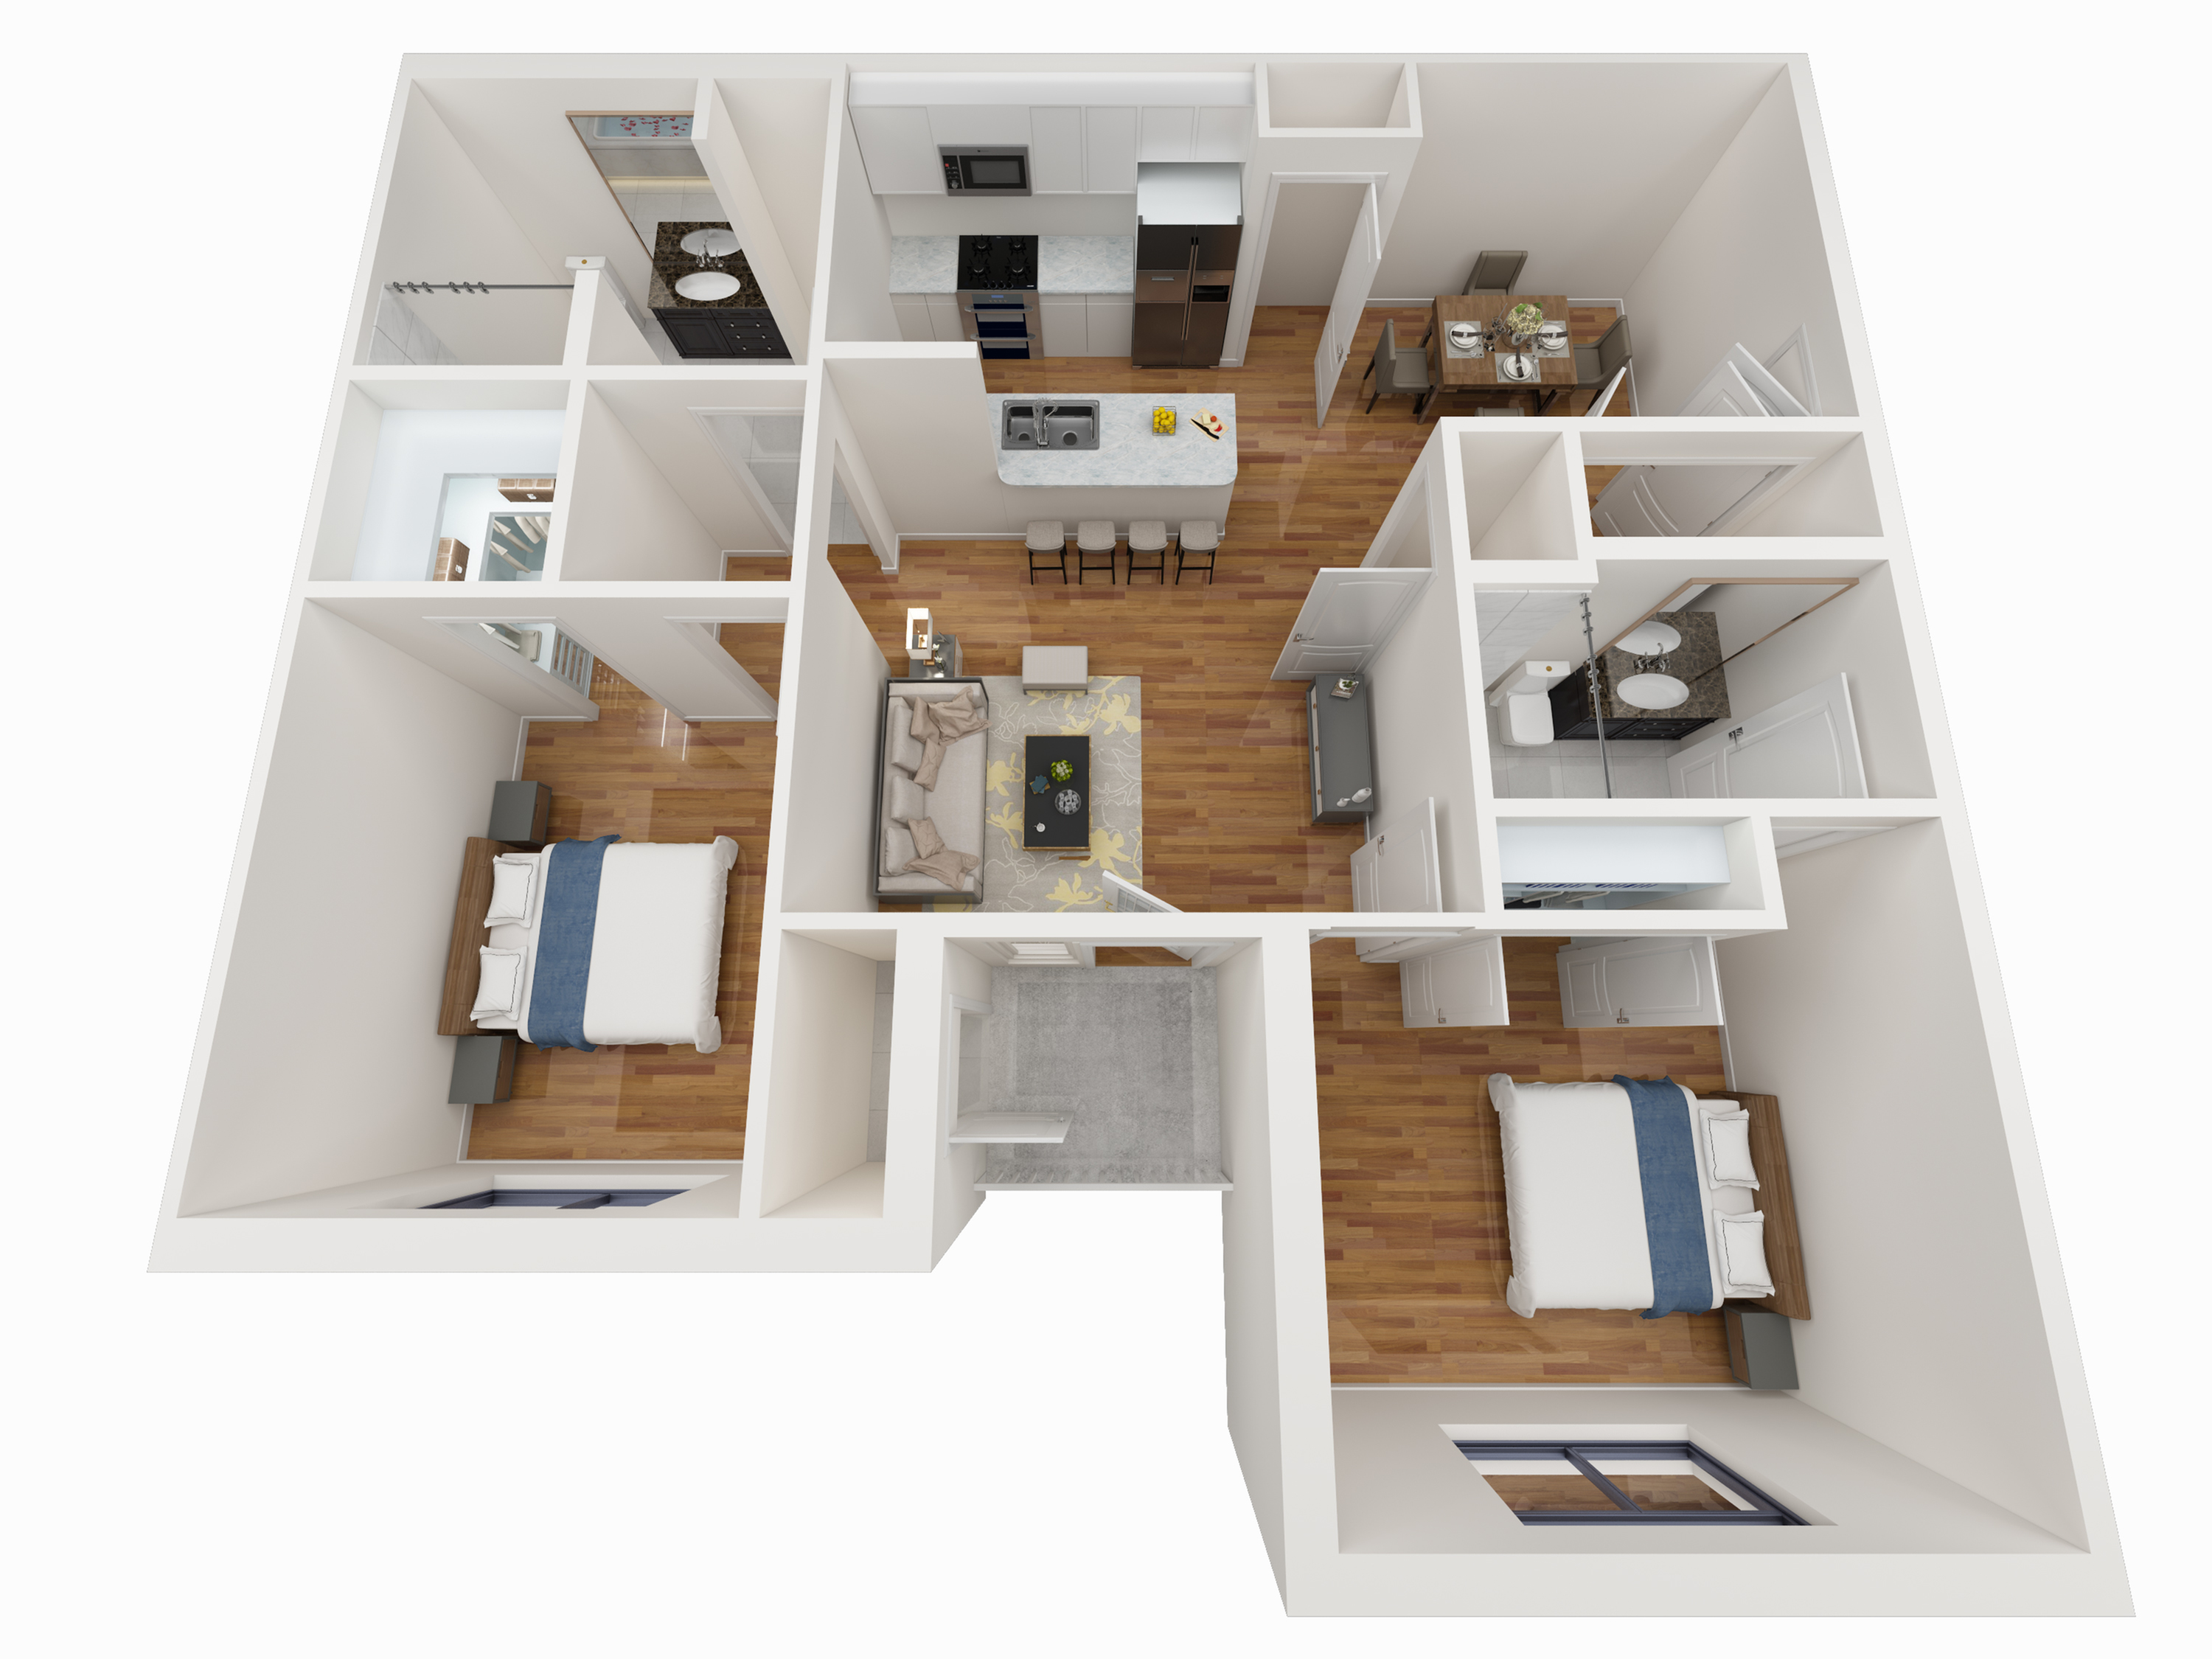 2 Bedroom Floor Plan - Avoca Apartments in Louisville, KY